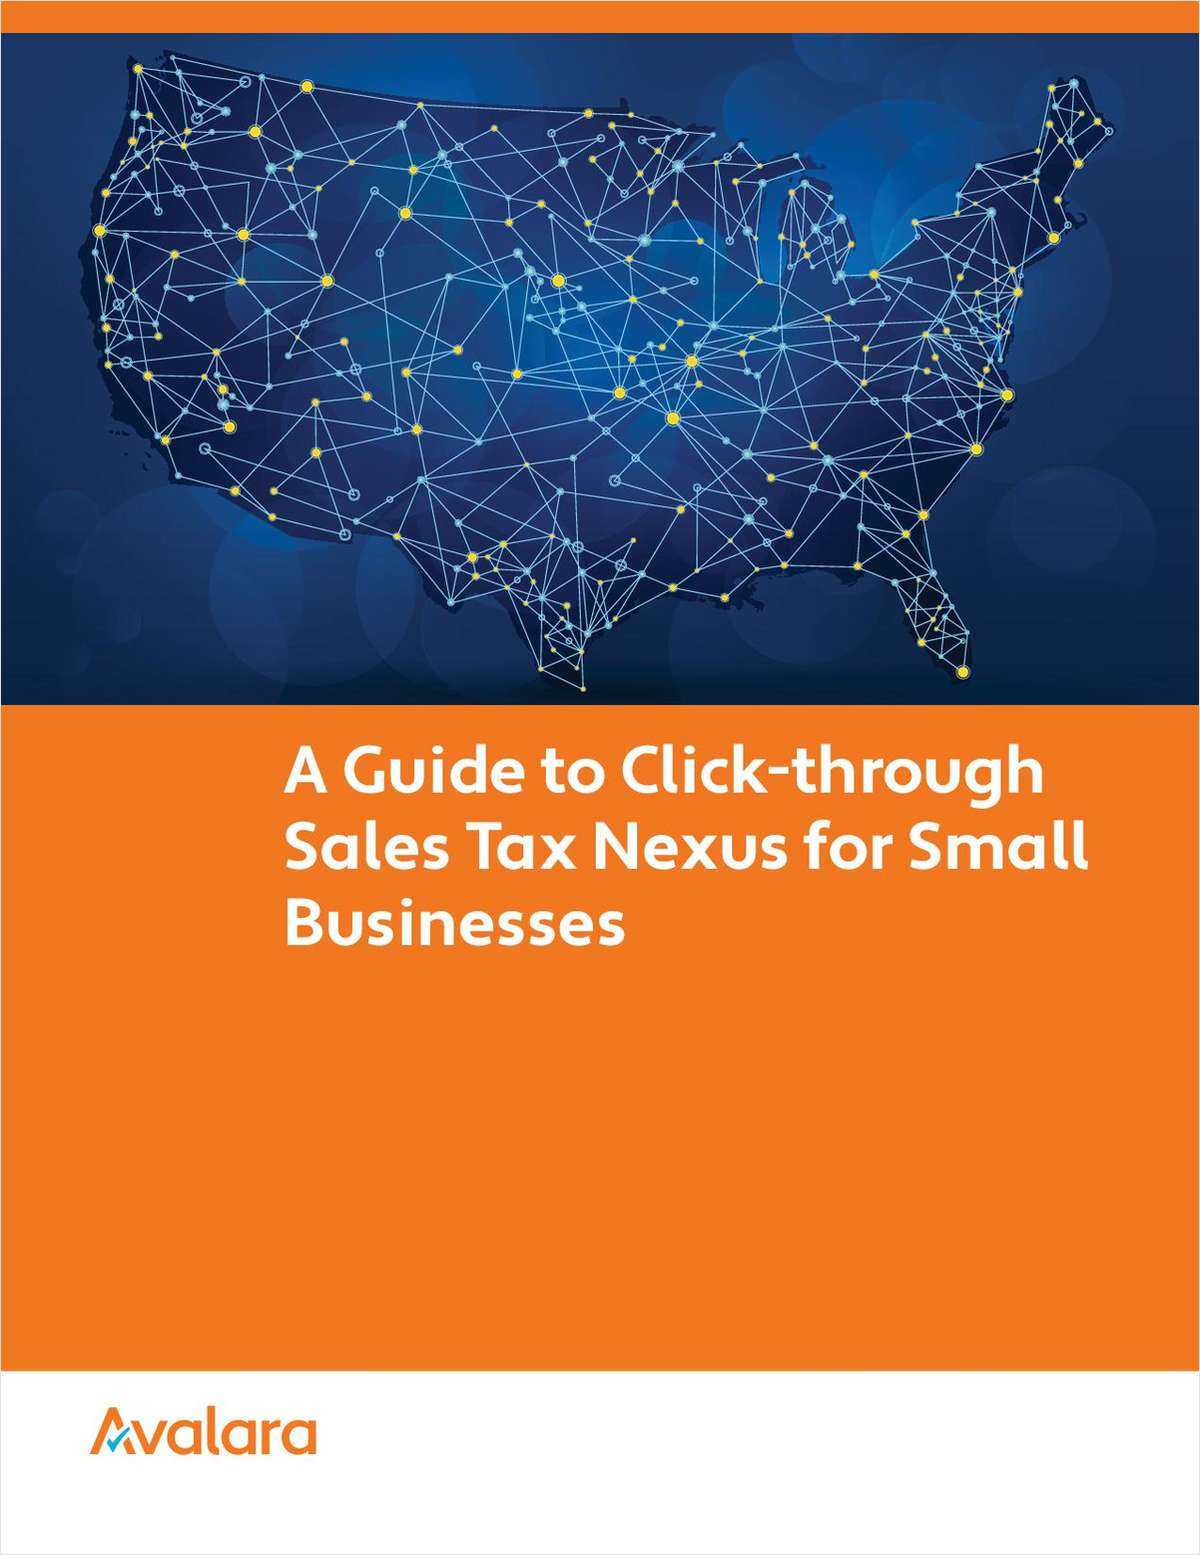 A Guide to Click-through Sales Tax Nexus for Small Businesses